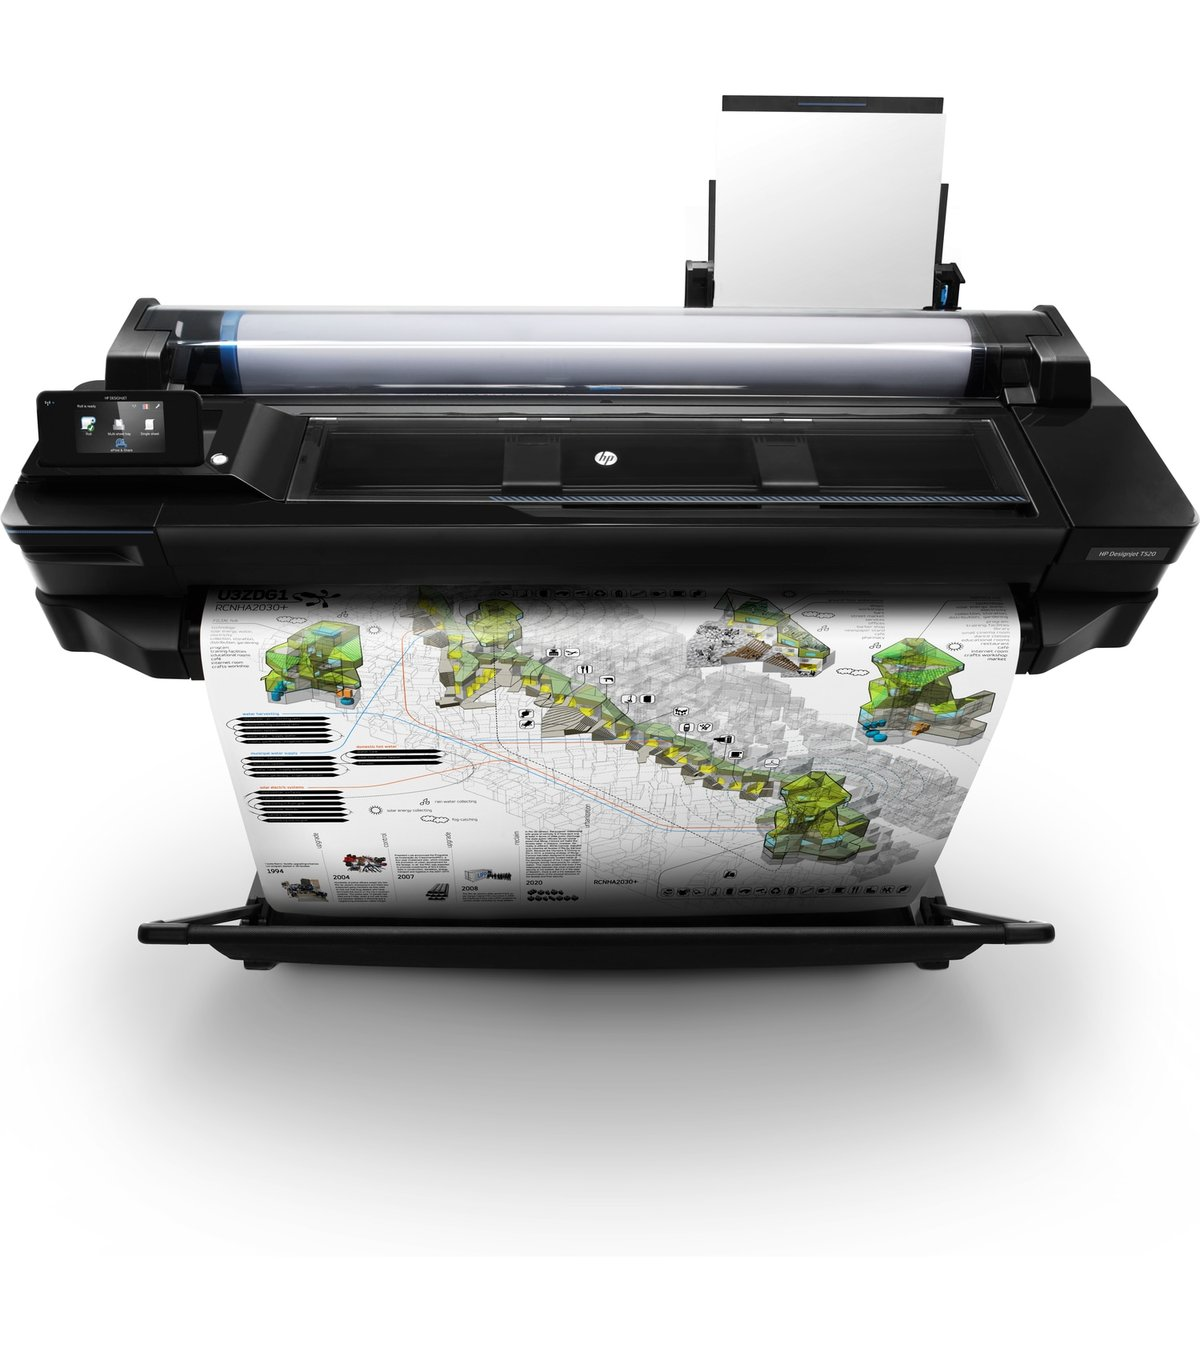 HP DesignJet T520 - ink-jet